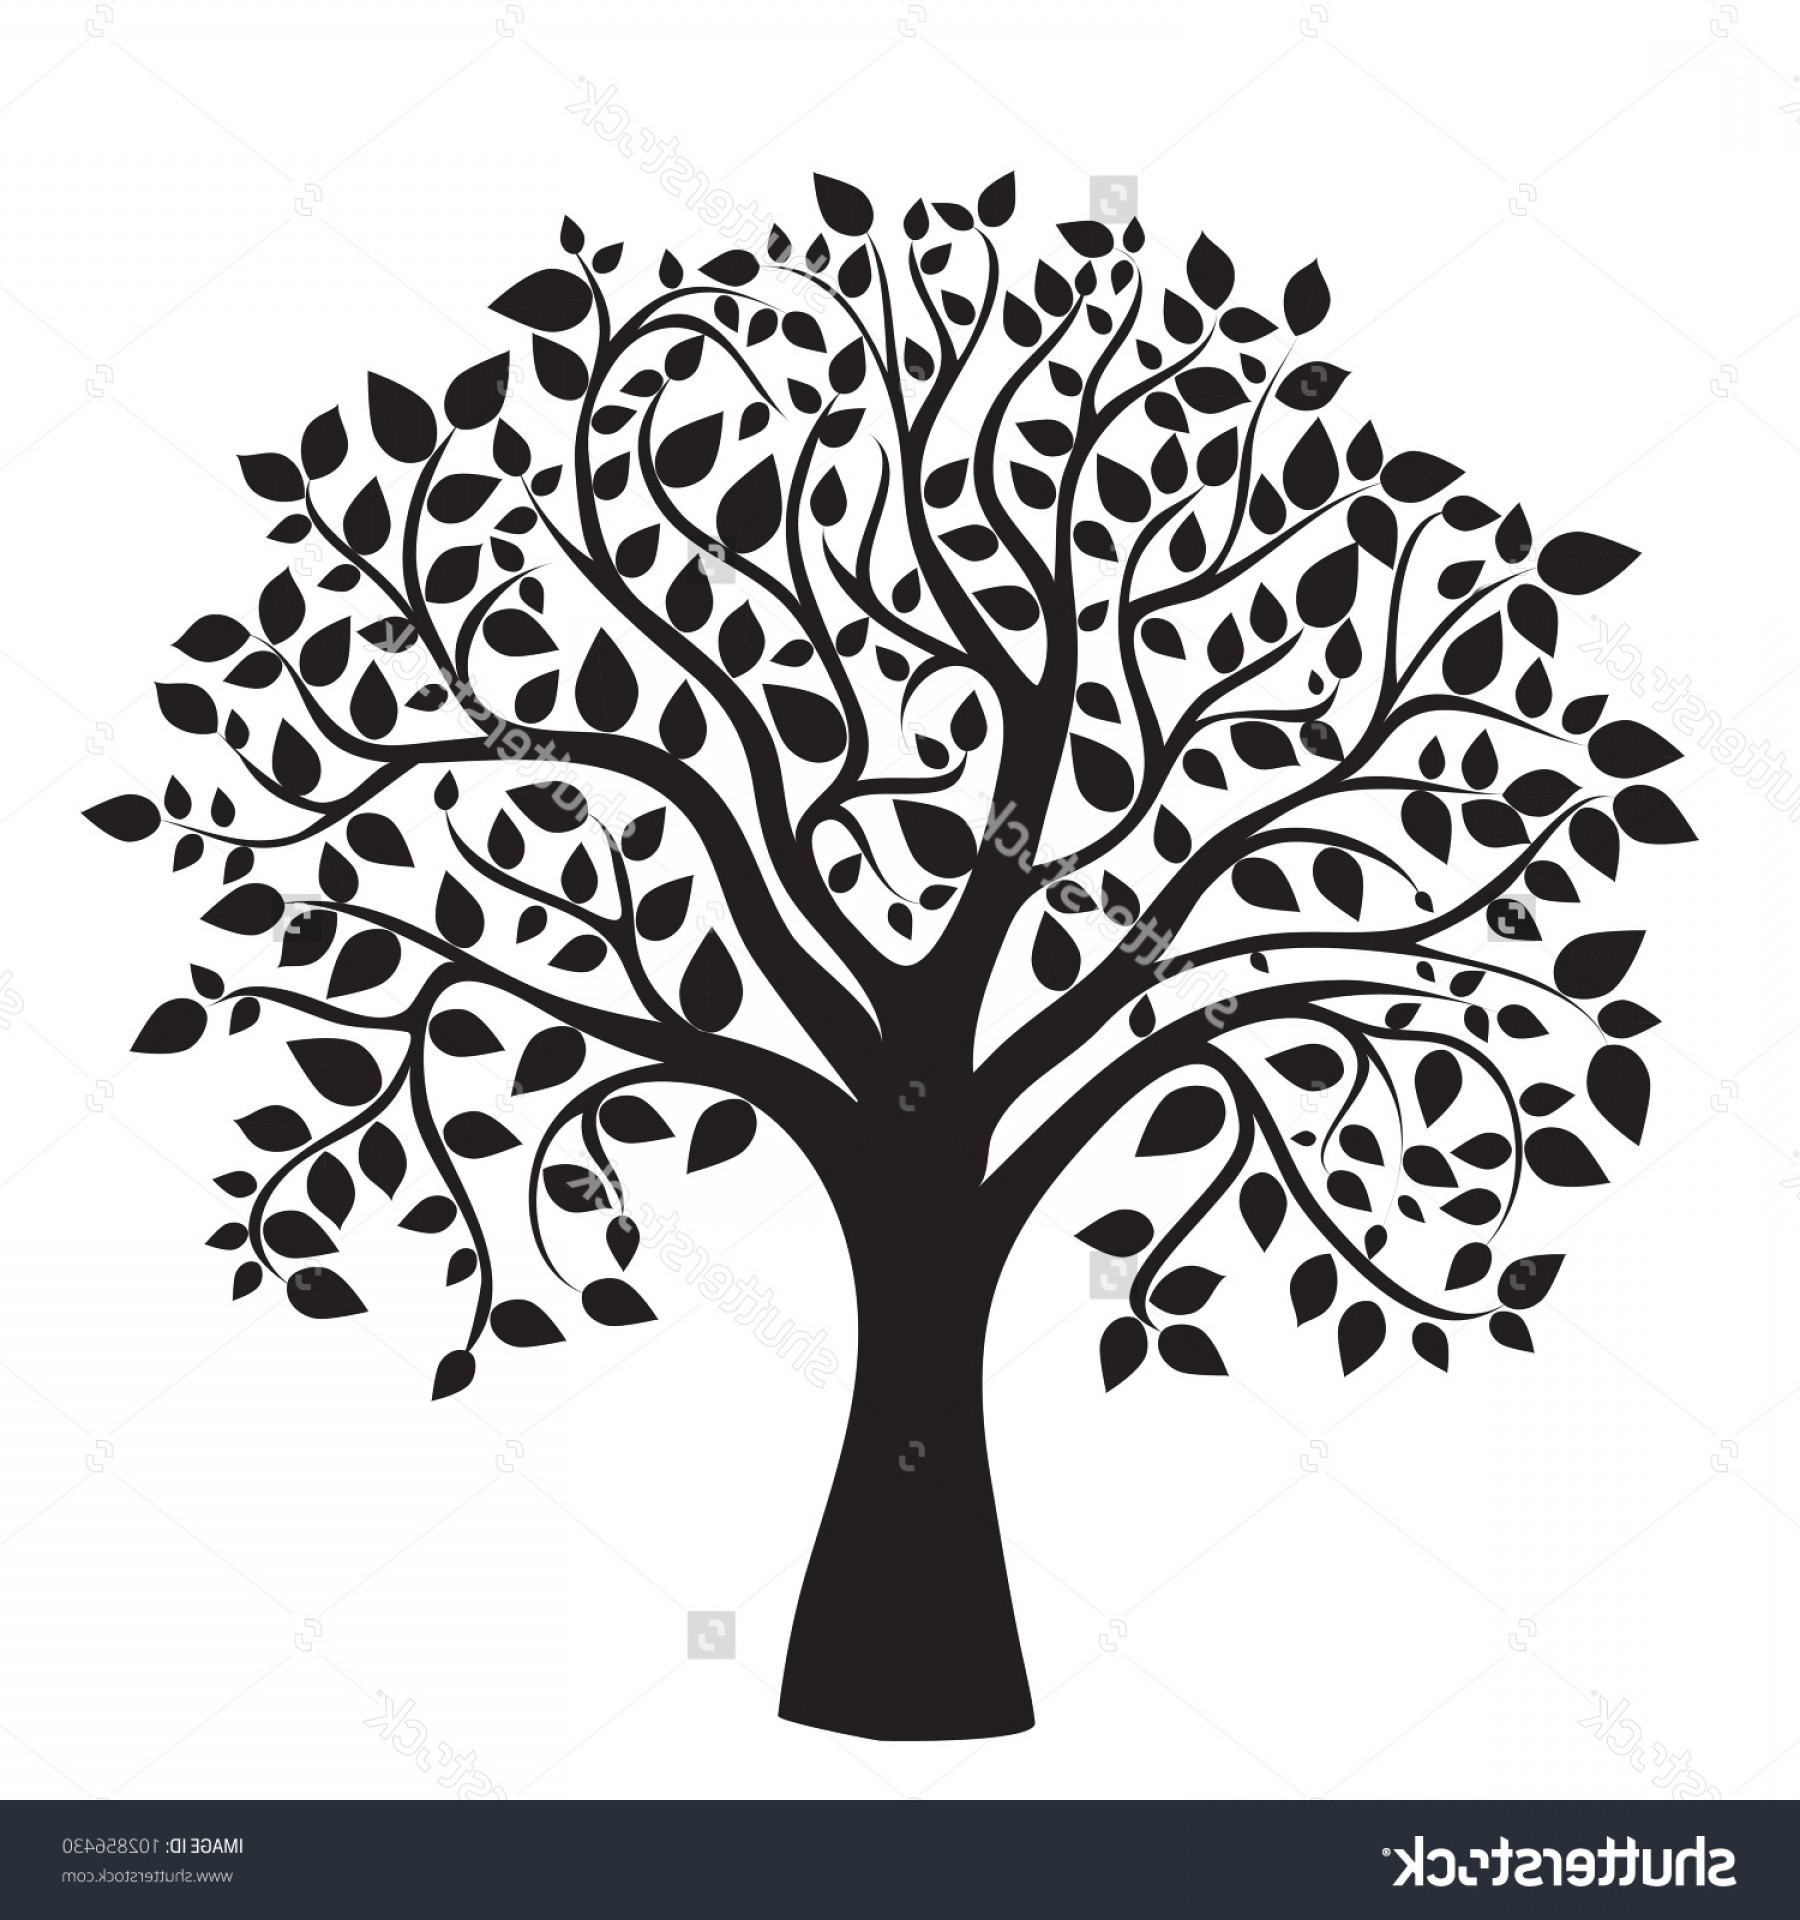 Apple Tree Vector Black: Stock Vector Black Tree Silhouette Isolated On White Background Vector